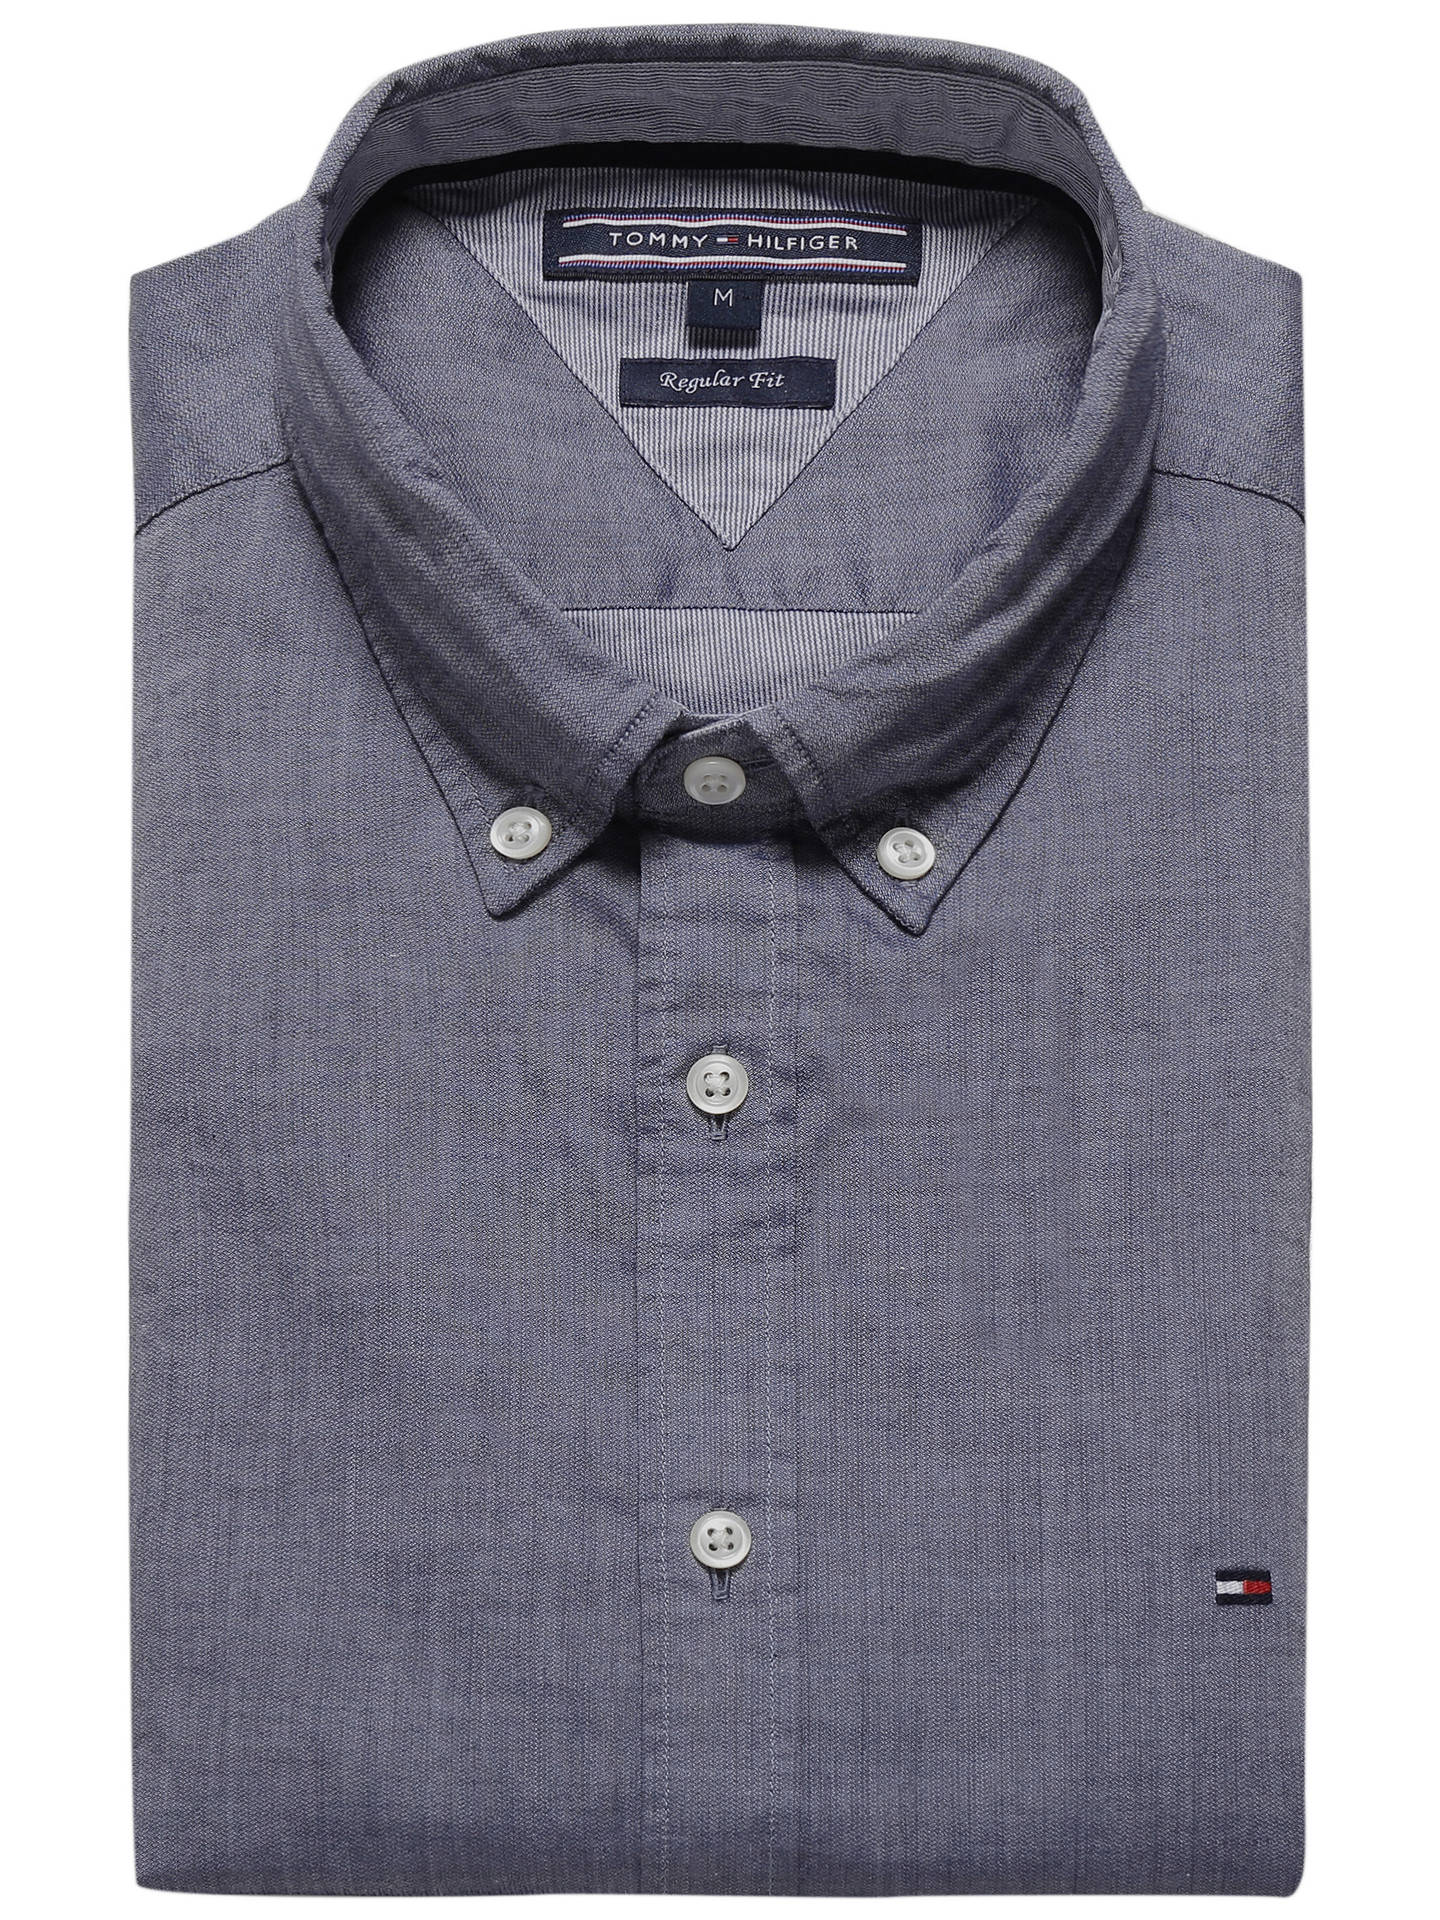 c7536842 ... Buy Tommy Hilfiger Two Tone Dobby Shirt, Navy, S Online at johnlewis.com